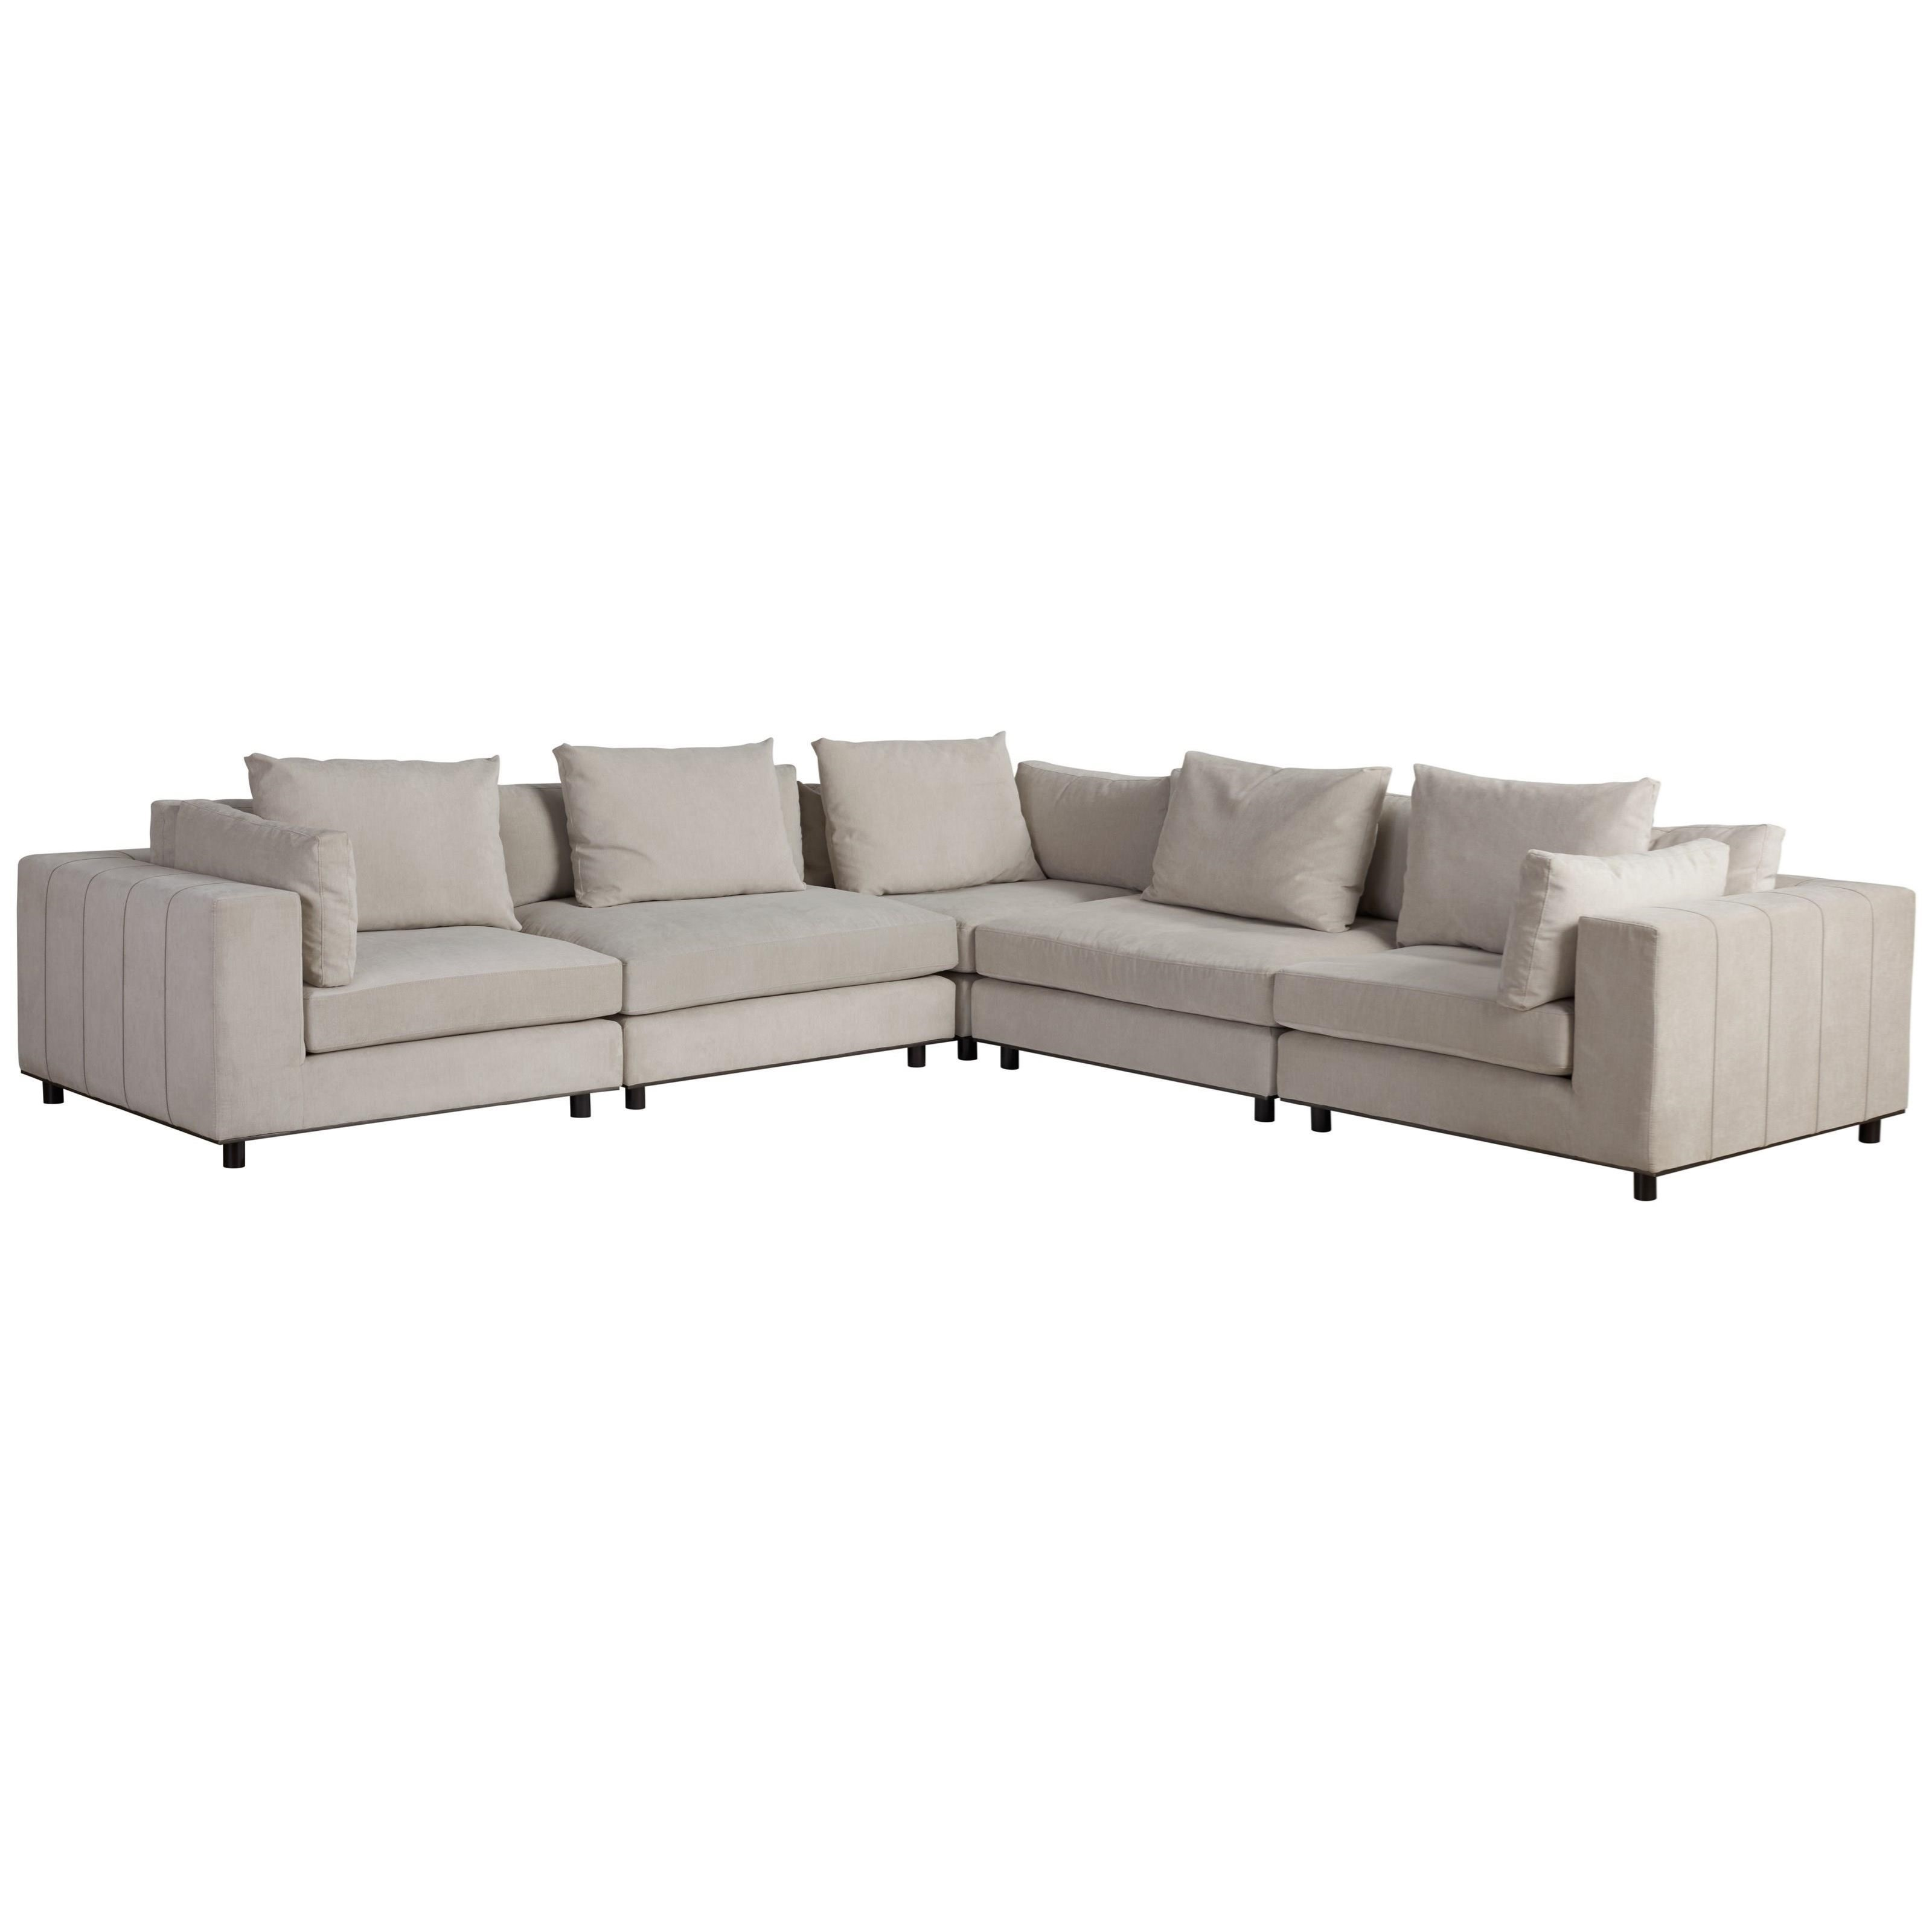 Nina Magon Andorra Sectional by Universal at Jacksonville Furniture Mart